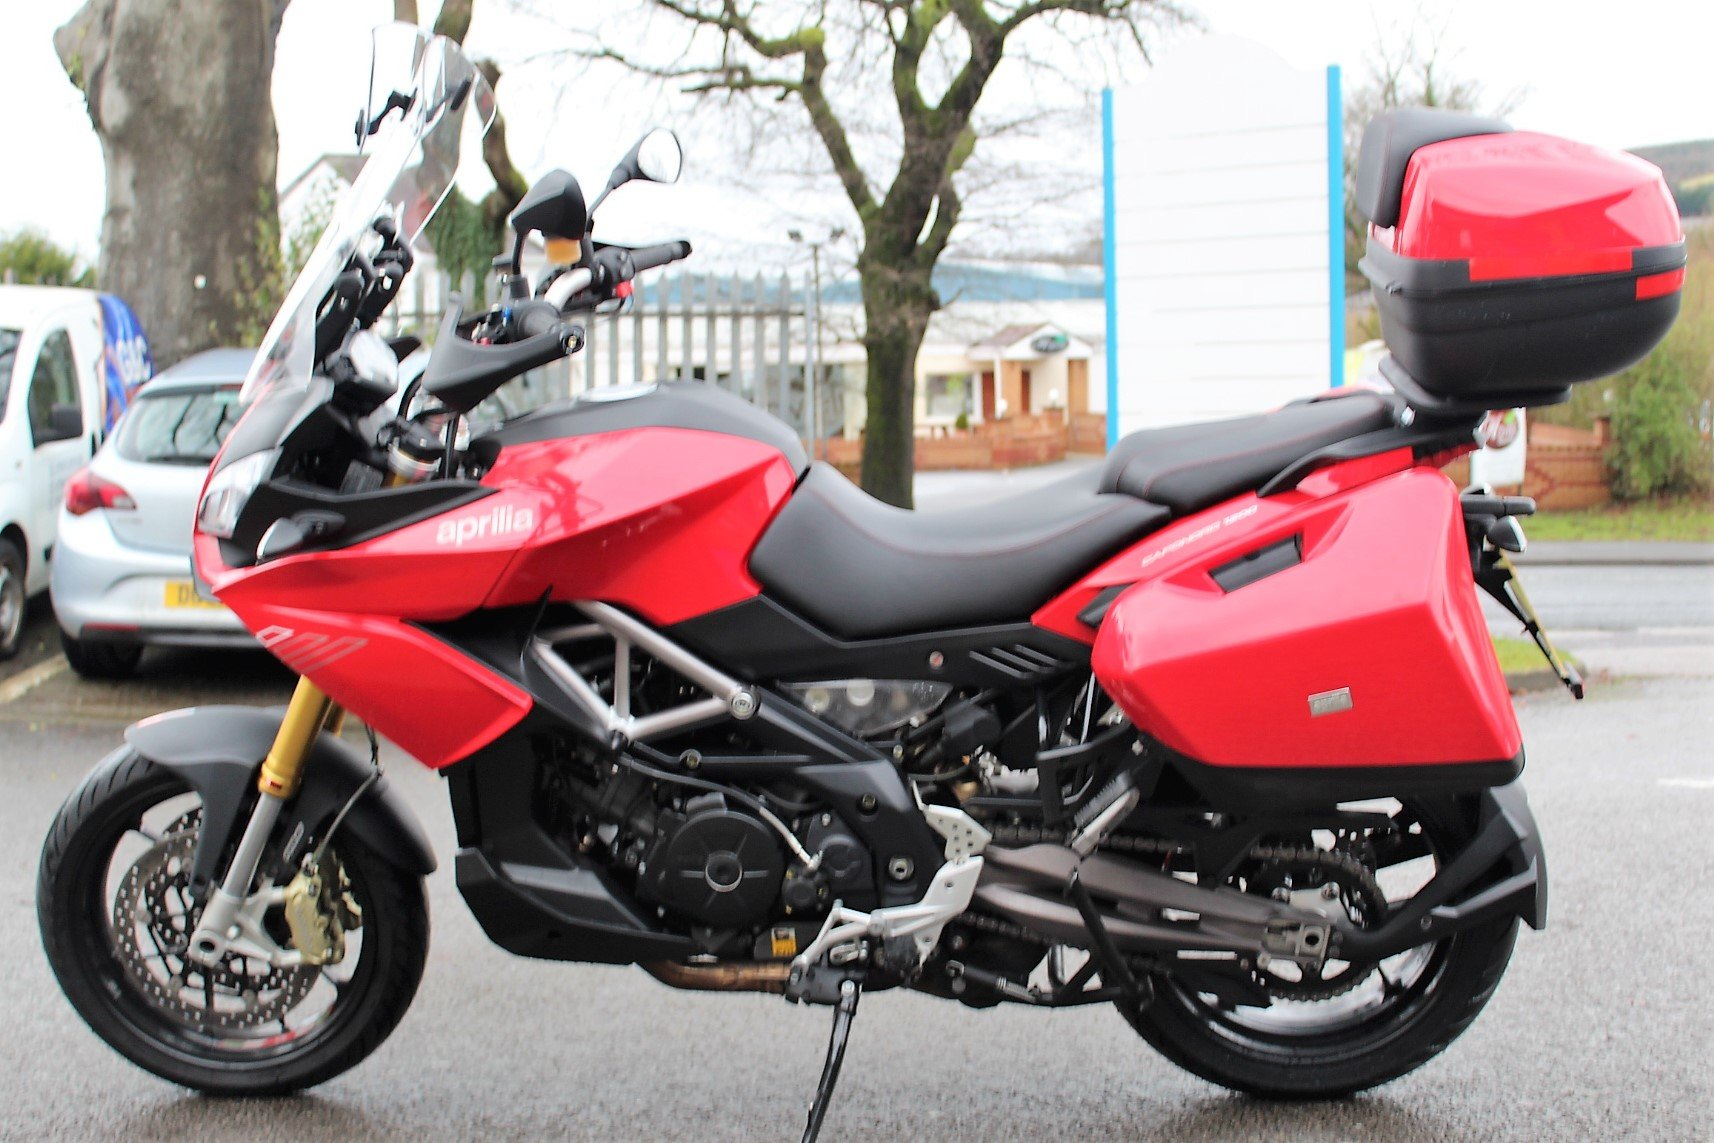 2015 65 Aprilia Caponord 1200 ABS Adventure Tourer For Sale (picture 4 of 12)